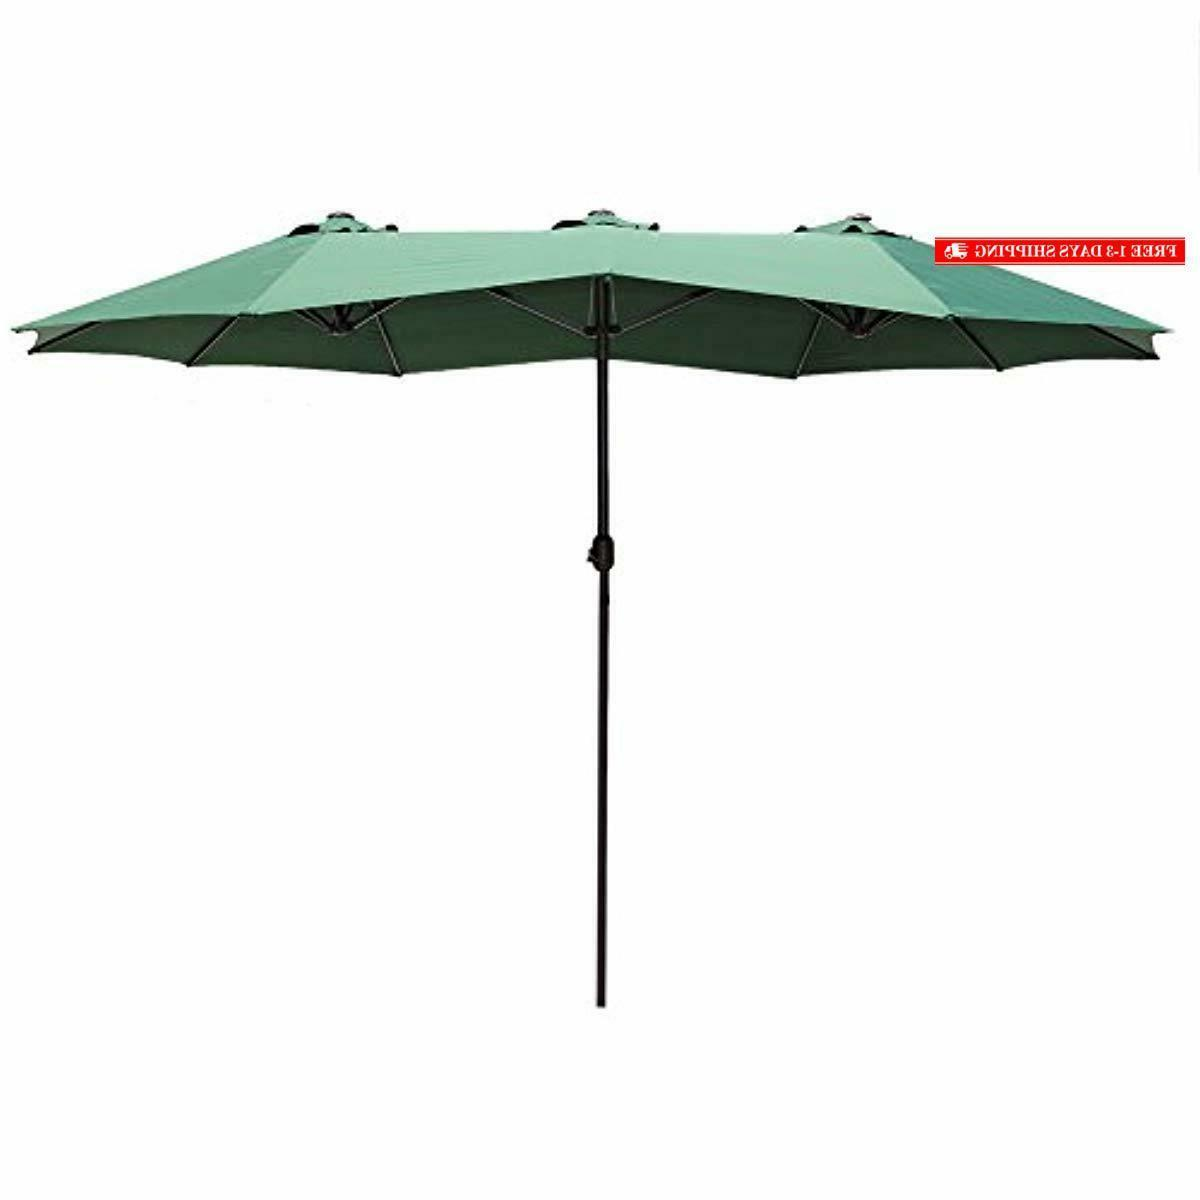 14 ft market outdoor umbrella double sided